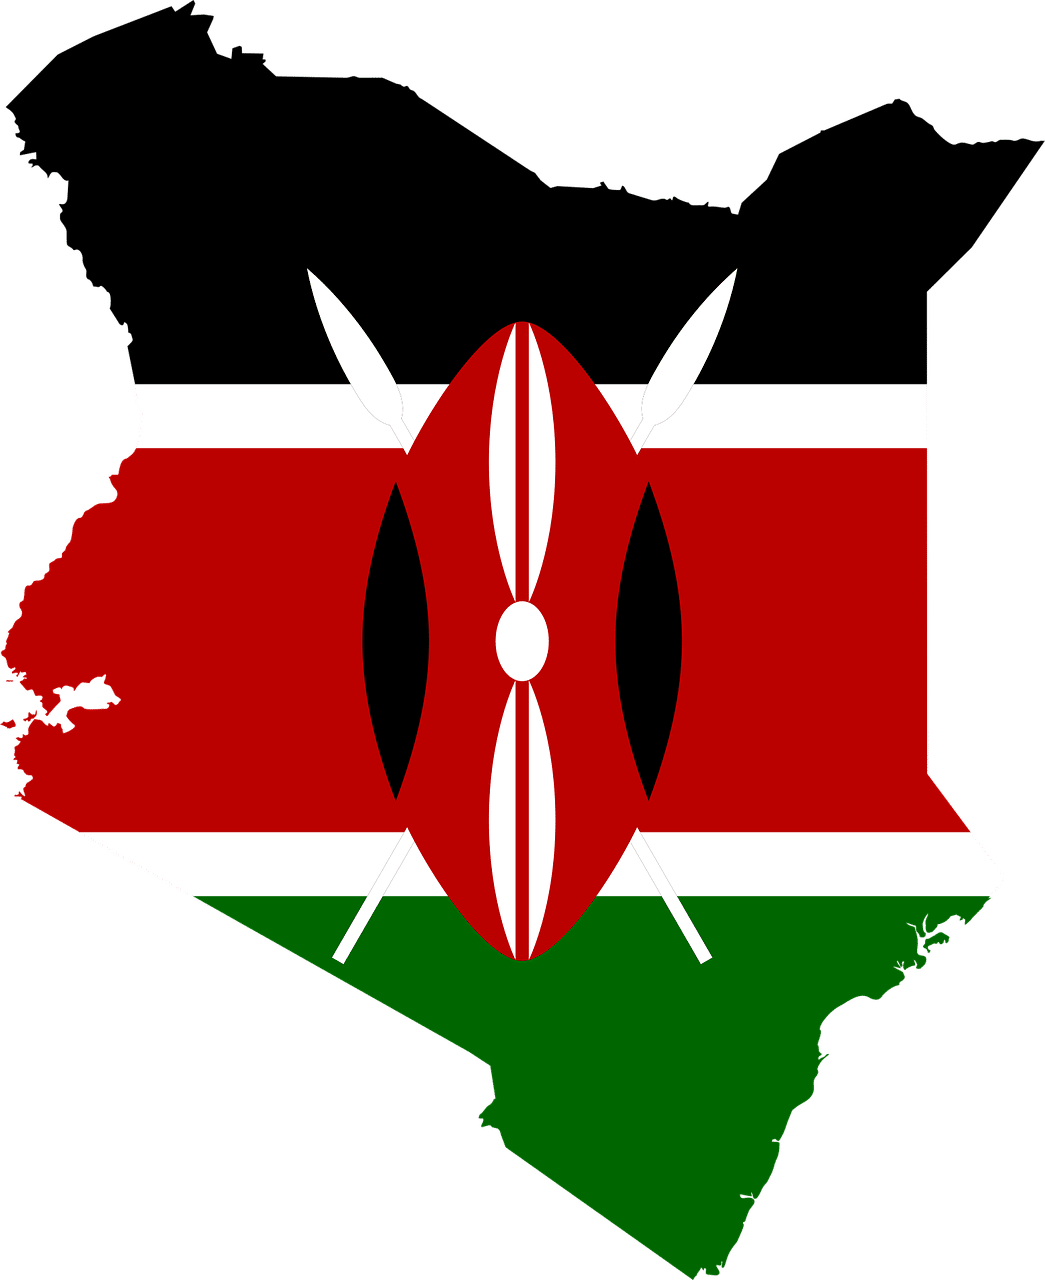 List of the best Cities in Kenya in 2020